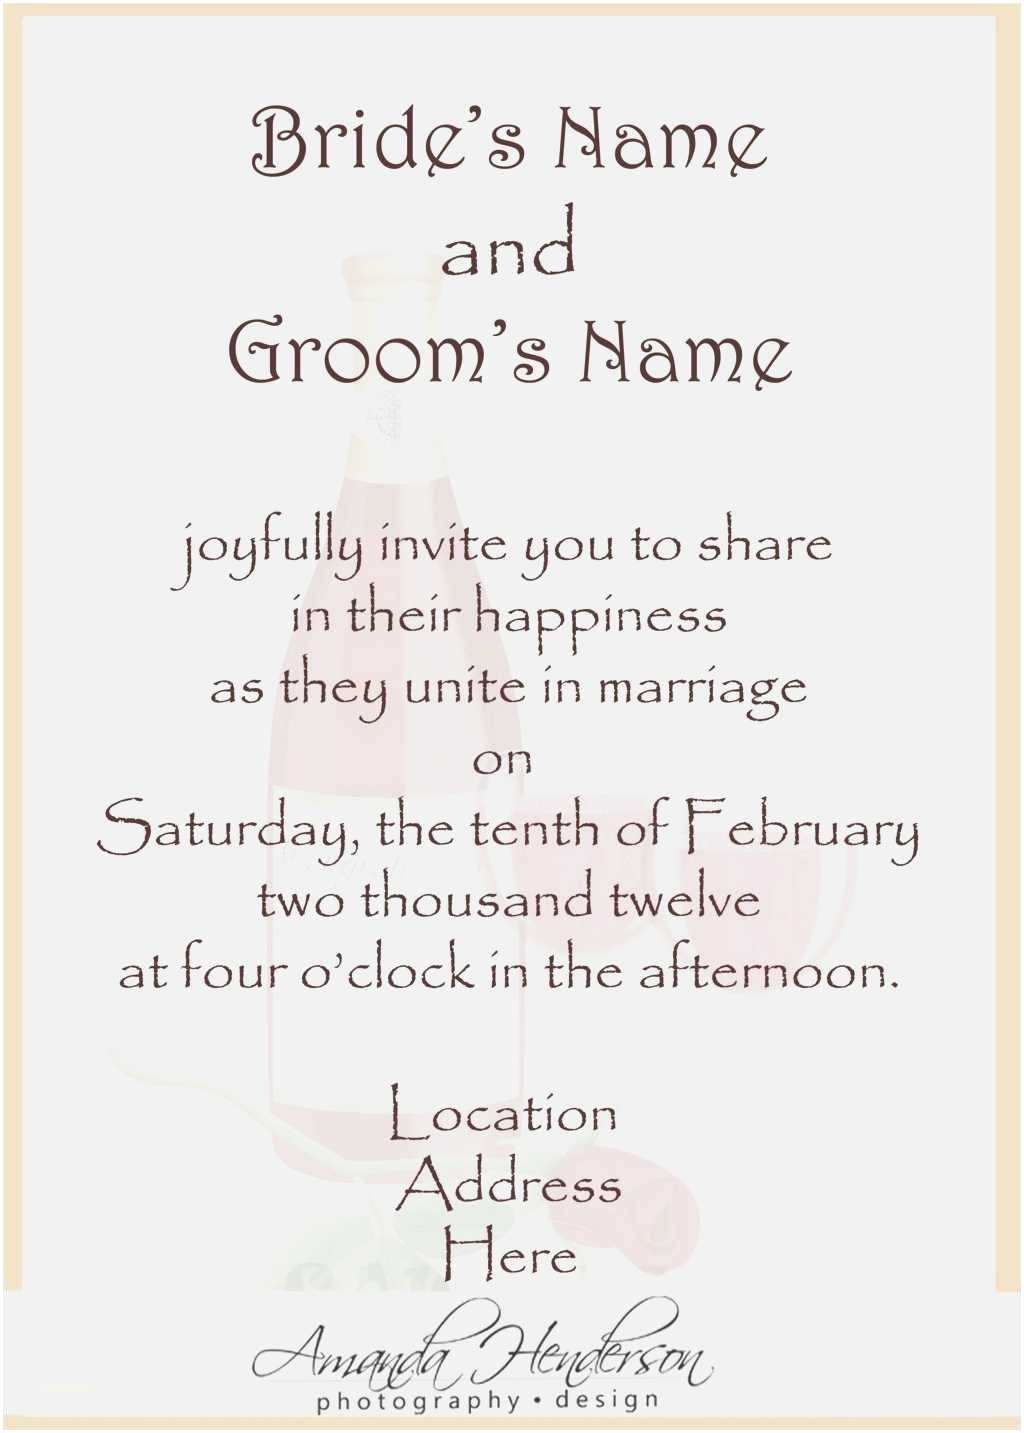 Wedding Invitation Wording Indian Bride and Groom New Wedding Invitations Samples Wording From Bride and